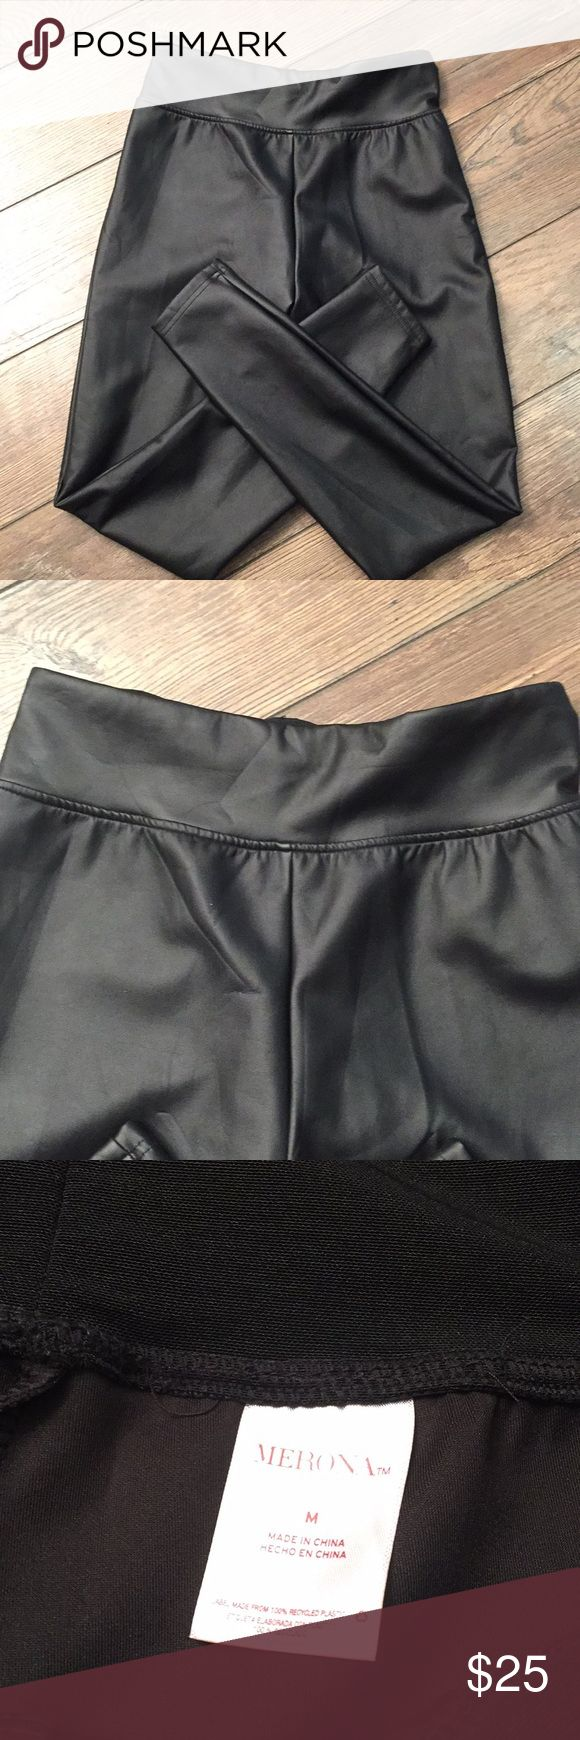 "Medium MERONA Faux Leather Leggings PANTS These are a great looking pair of pants. They are a faux leather fabric. They have a wide band waistline. They measure approx 28"" in the unstretched waist and the inseam measures approx 28"". They are in new condition! Merona Pants Leggings"